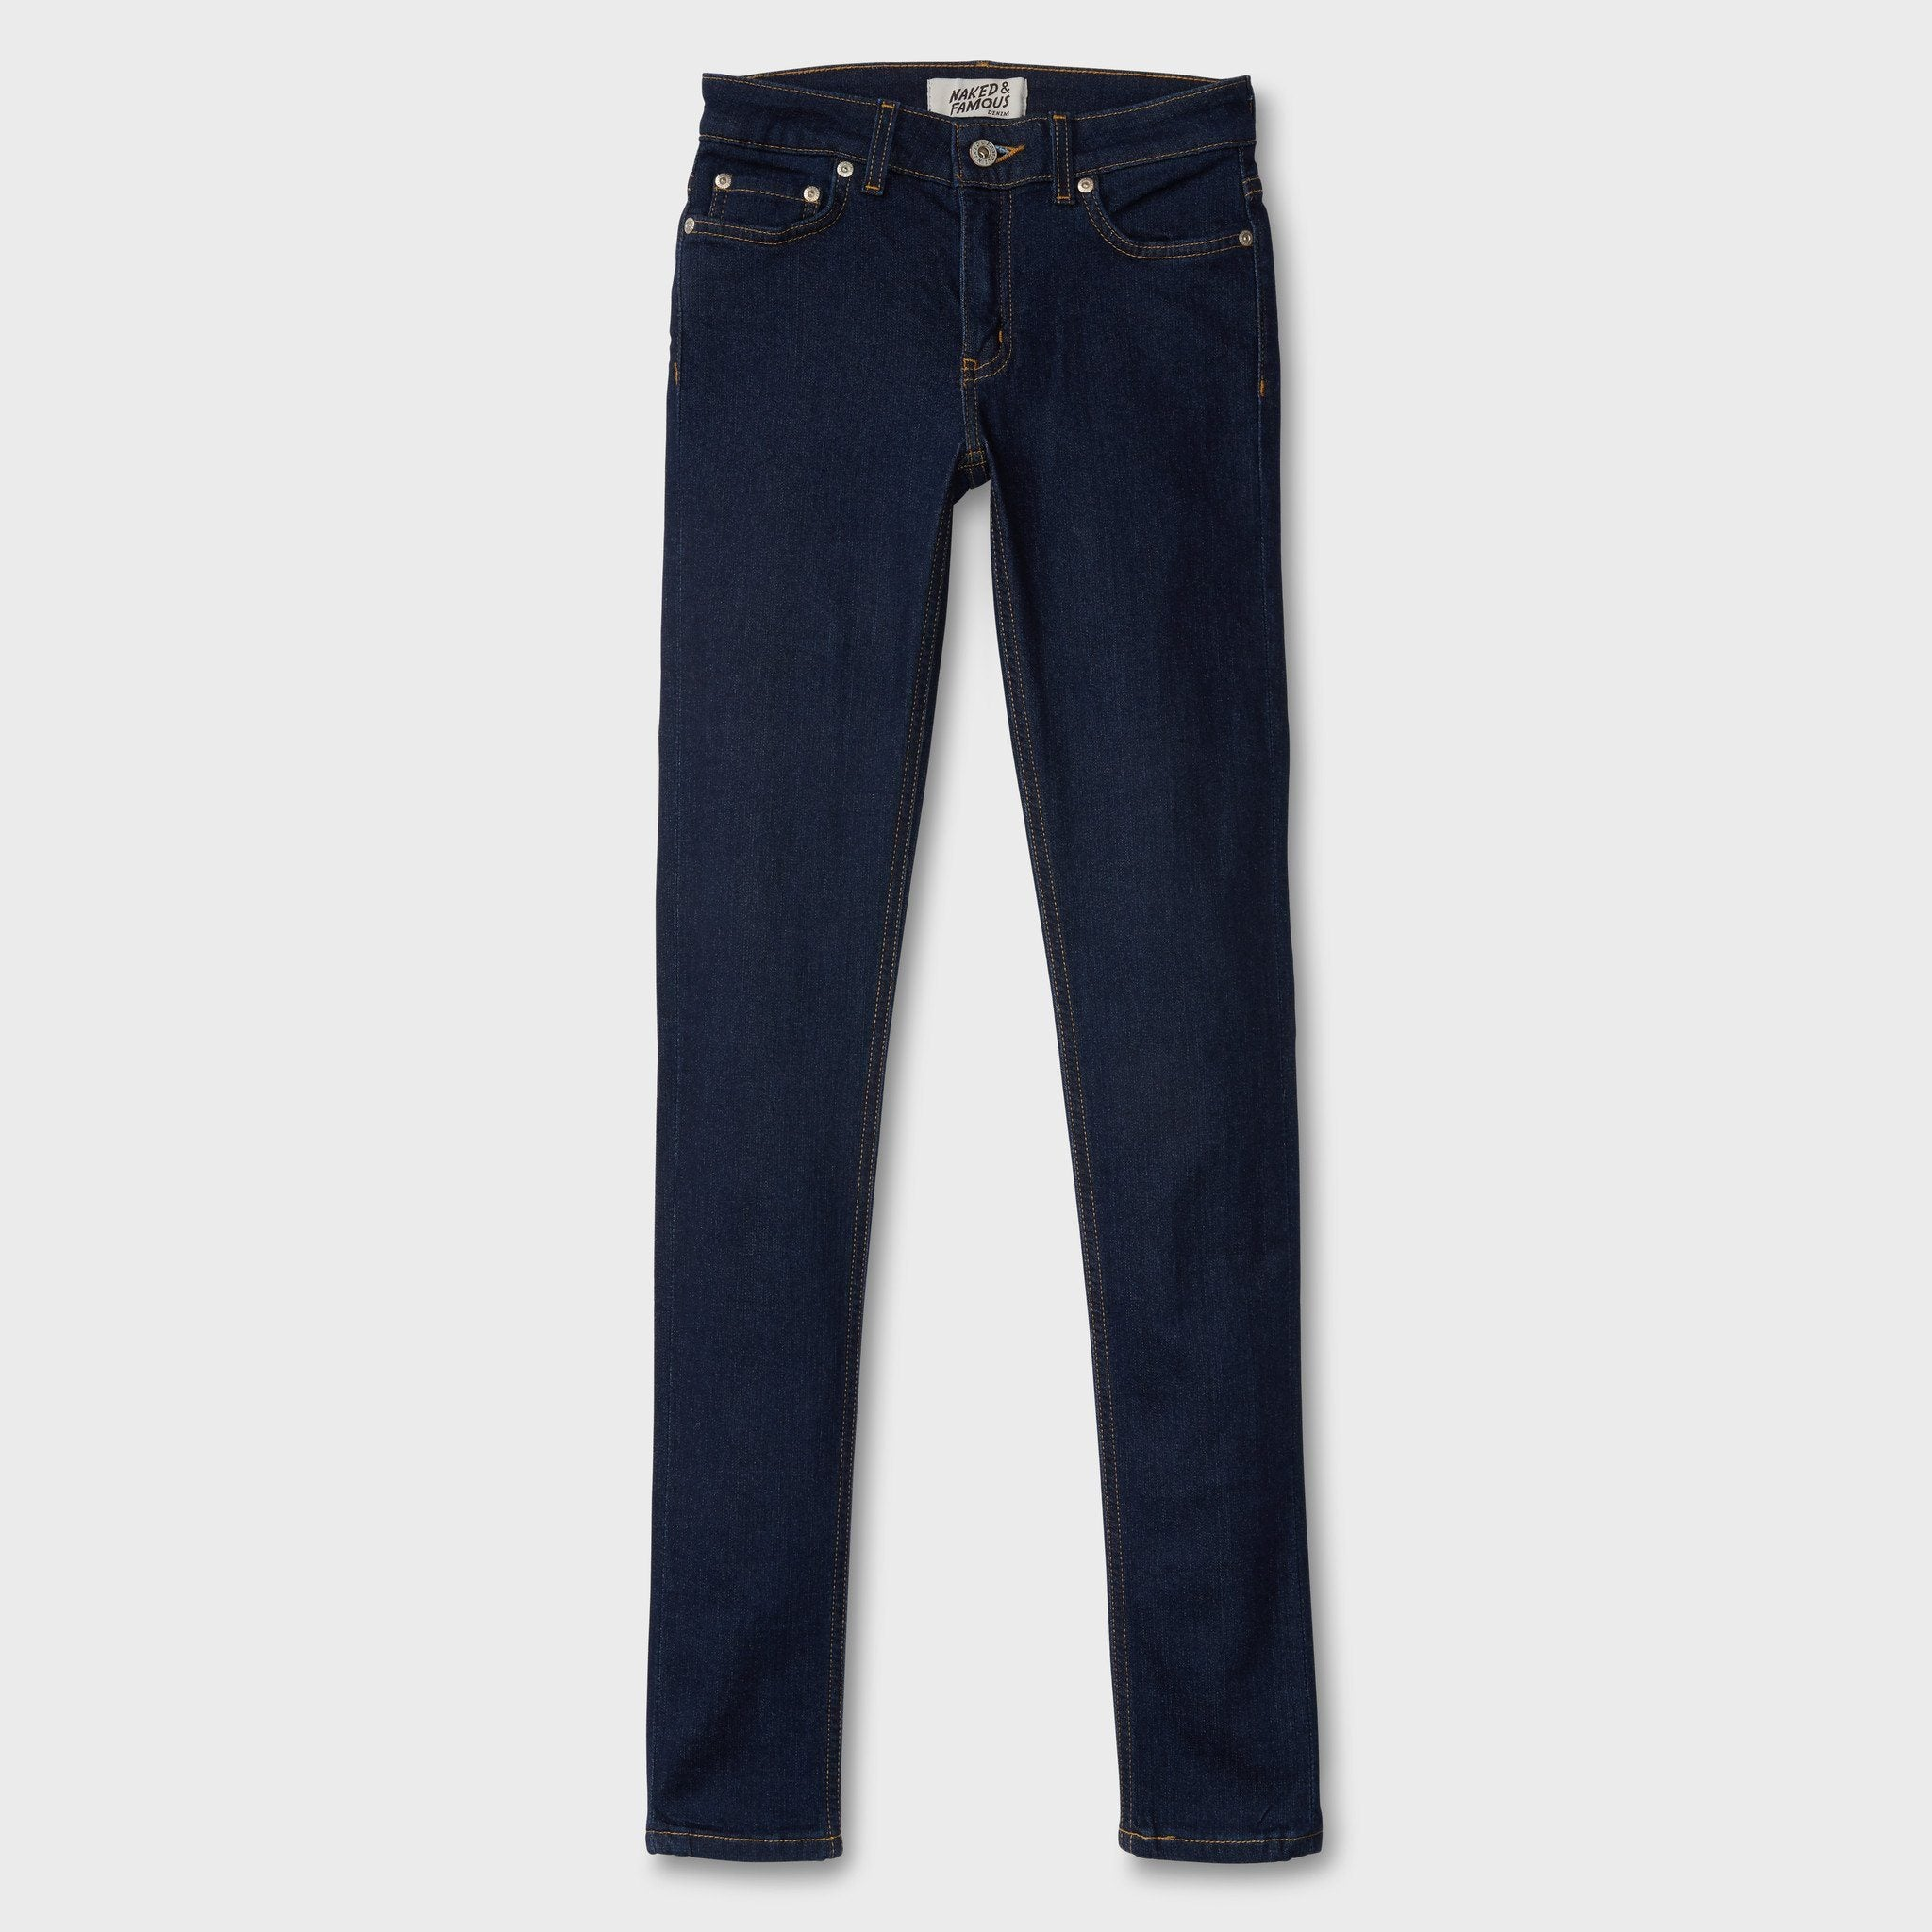 Naked & Famous Ultra Soft Stretch Skinny Indigo